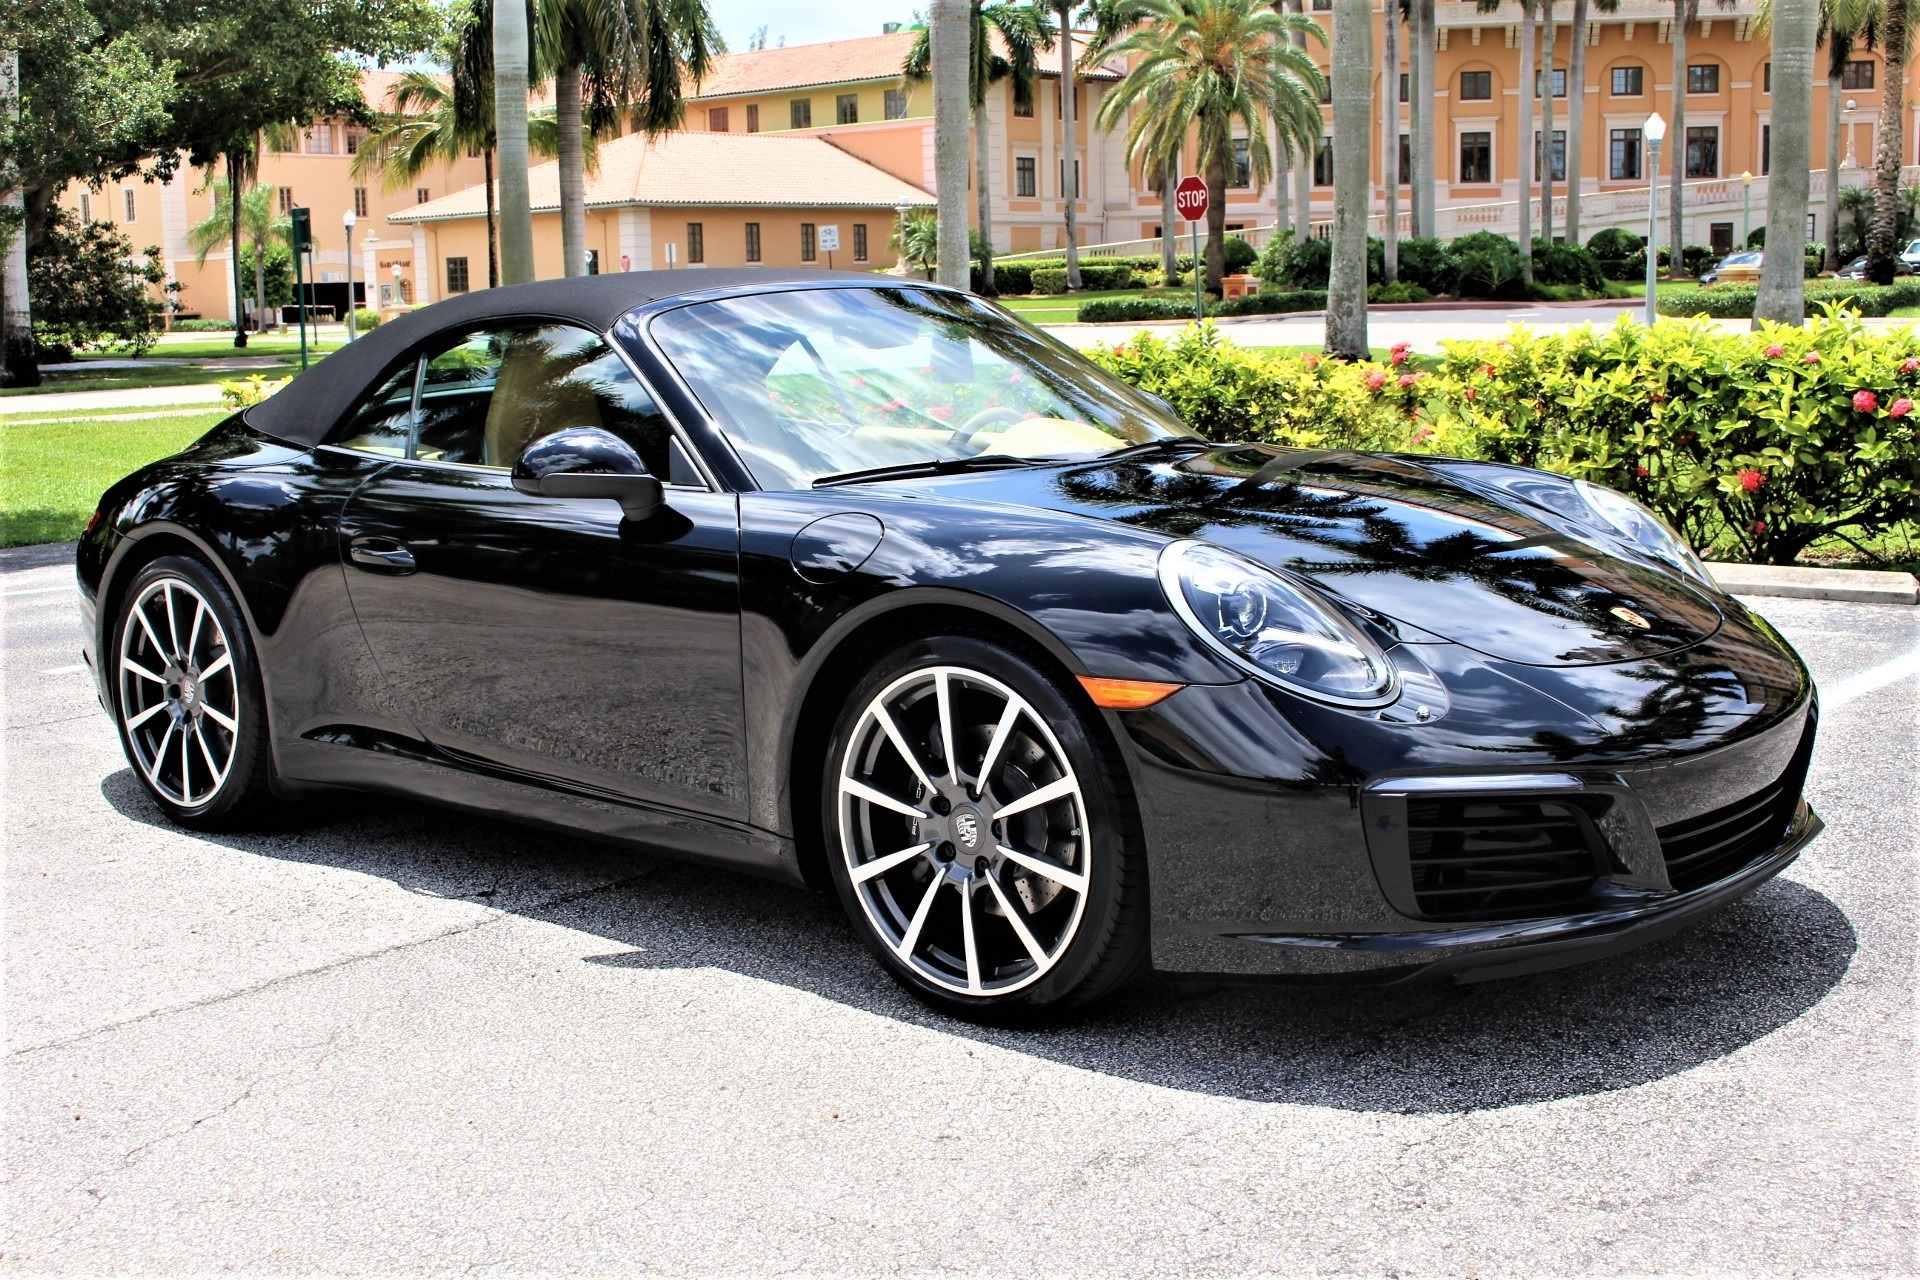 Used 2017 Porsche 911 Carrera for sale Sold at The Gables Sports Cars in Miami FL 33146 4